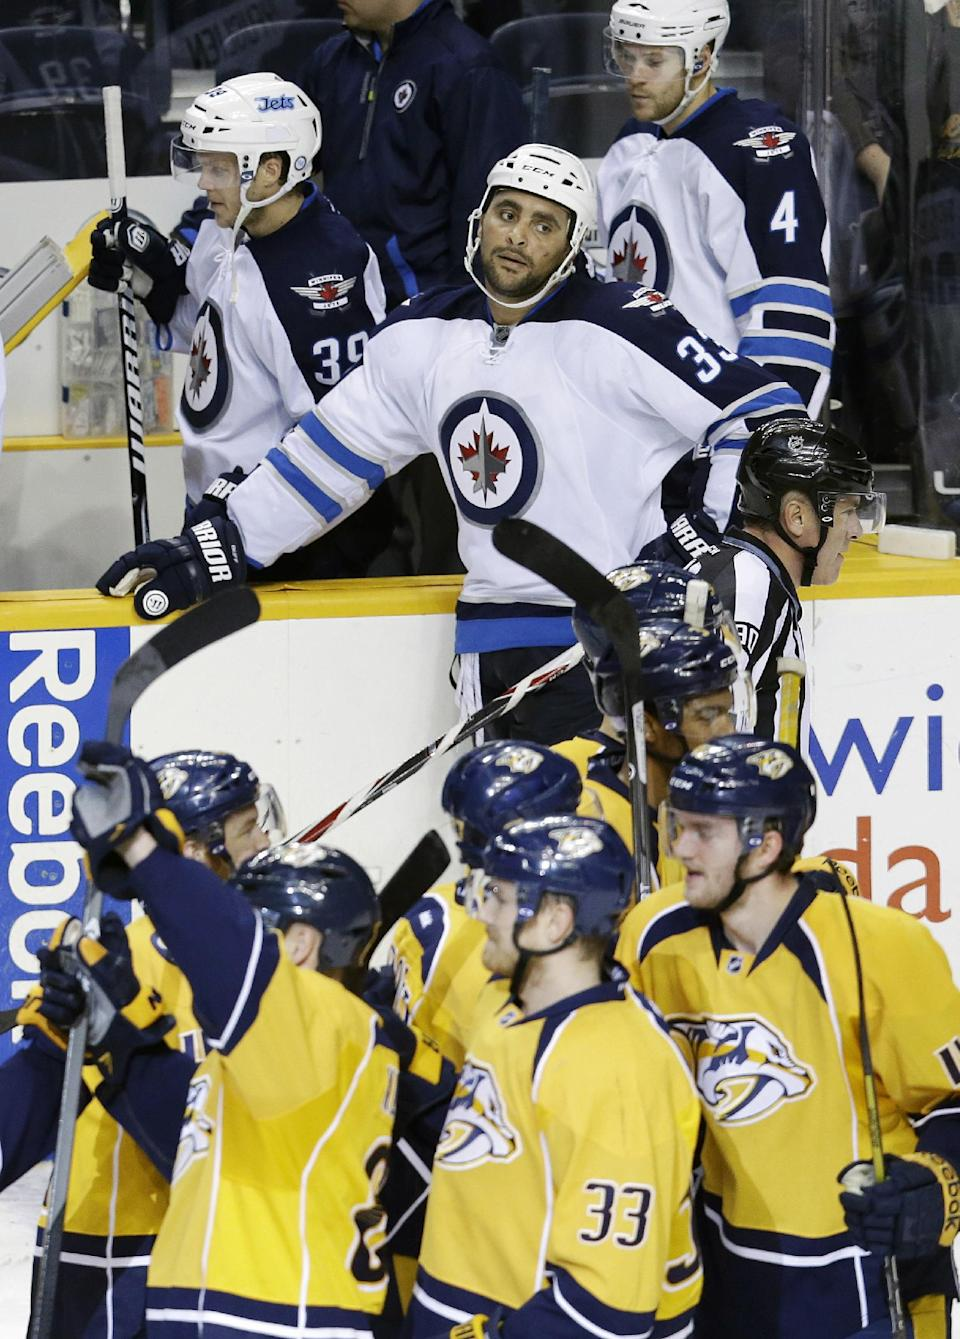 Predators slip past Jets 3-2 in OT